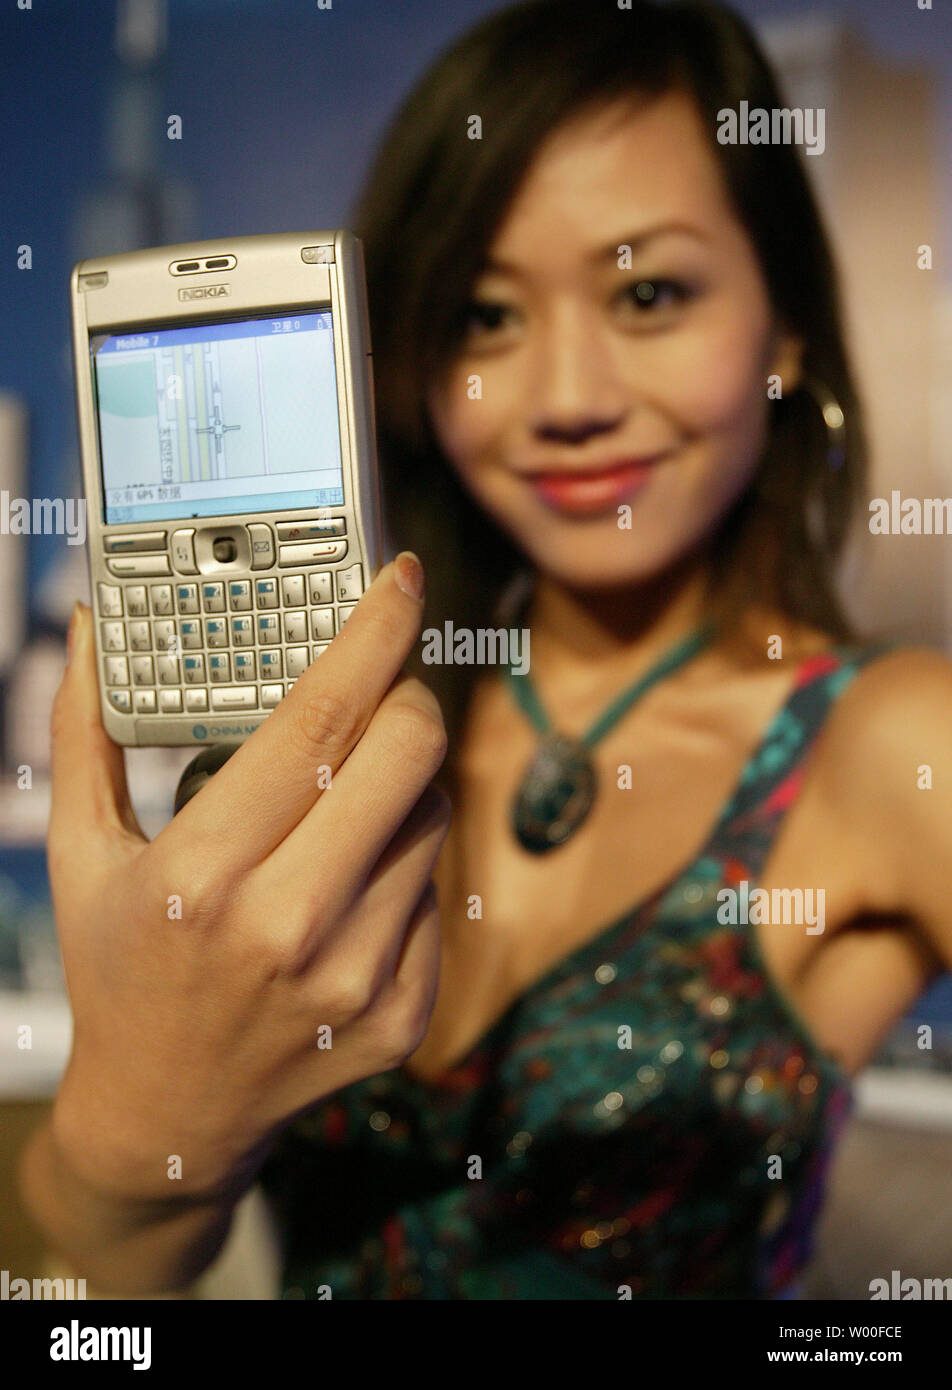 A Chinese model displays Nokia's latest mobile phone, the E62,  at Nokia's 'Our Mobile Life 2007' conference in Beijing, China. on December 03, 2006.  Nokia, the world's biggest cell- phone maker, expects the number of handset users in China to rise 11 percent to more than 500 million in 2007, boosted by growth in rural areas.  The country will add a further 160 million users from next year until 2010, Espoo, Finland-based Nokia said in a statement issued in Beijing today. China had 449 million users as of October, more than the populations of Japan and the U.S. combined.  (UPI Photo/Stephen S - Stock Image